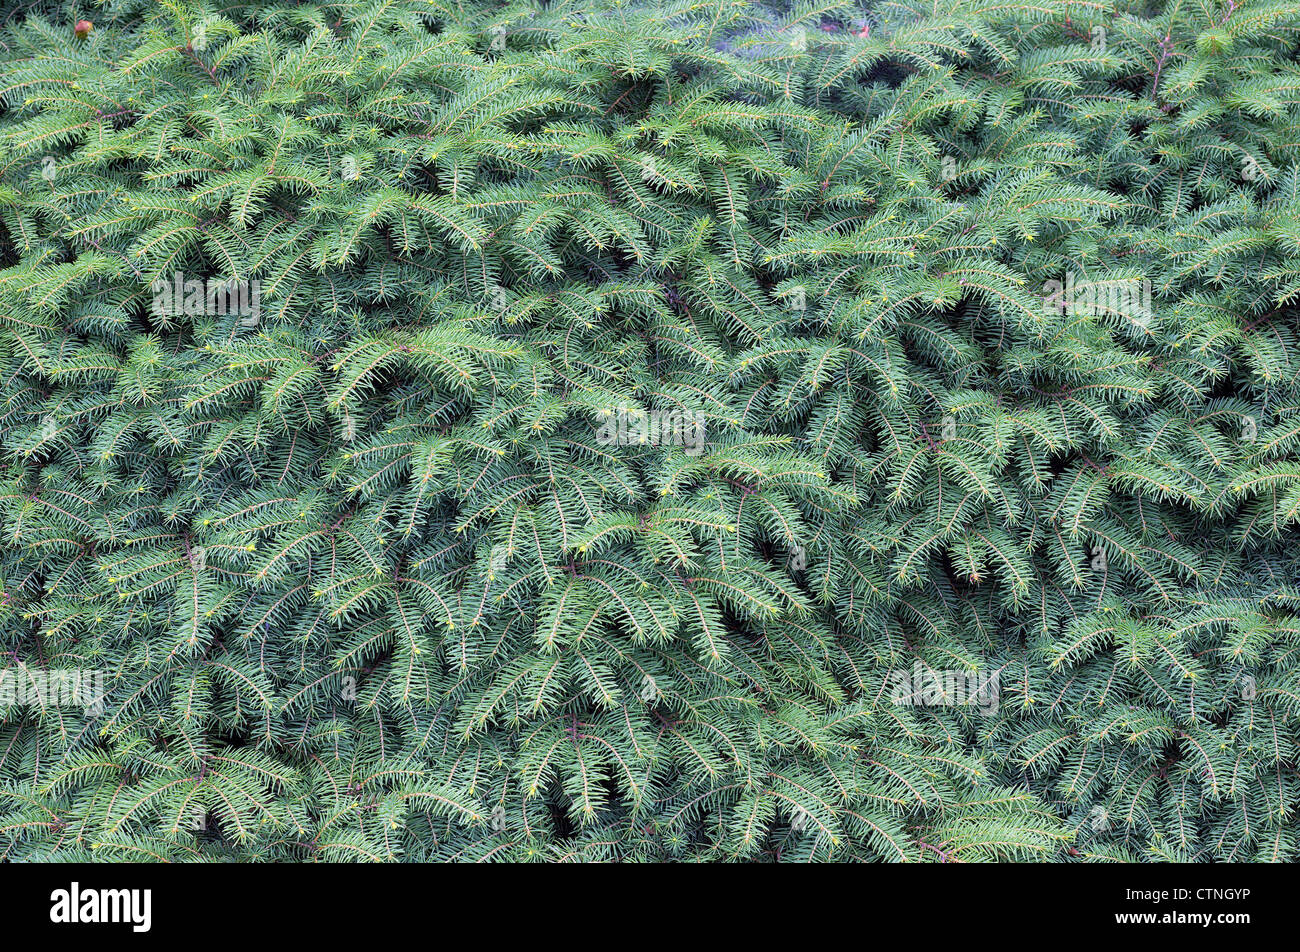 Spruce tree sprouts Picea abies - Stock Image